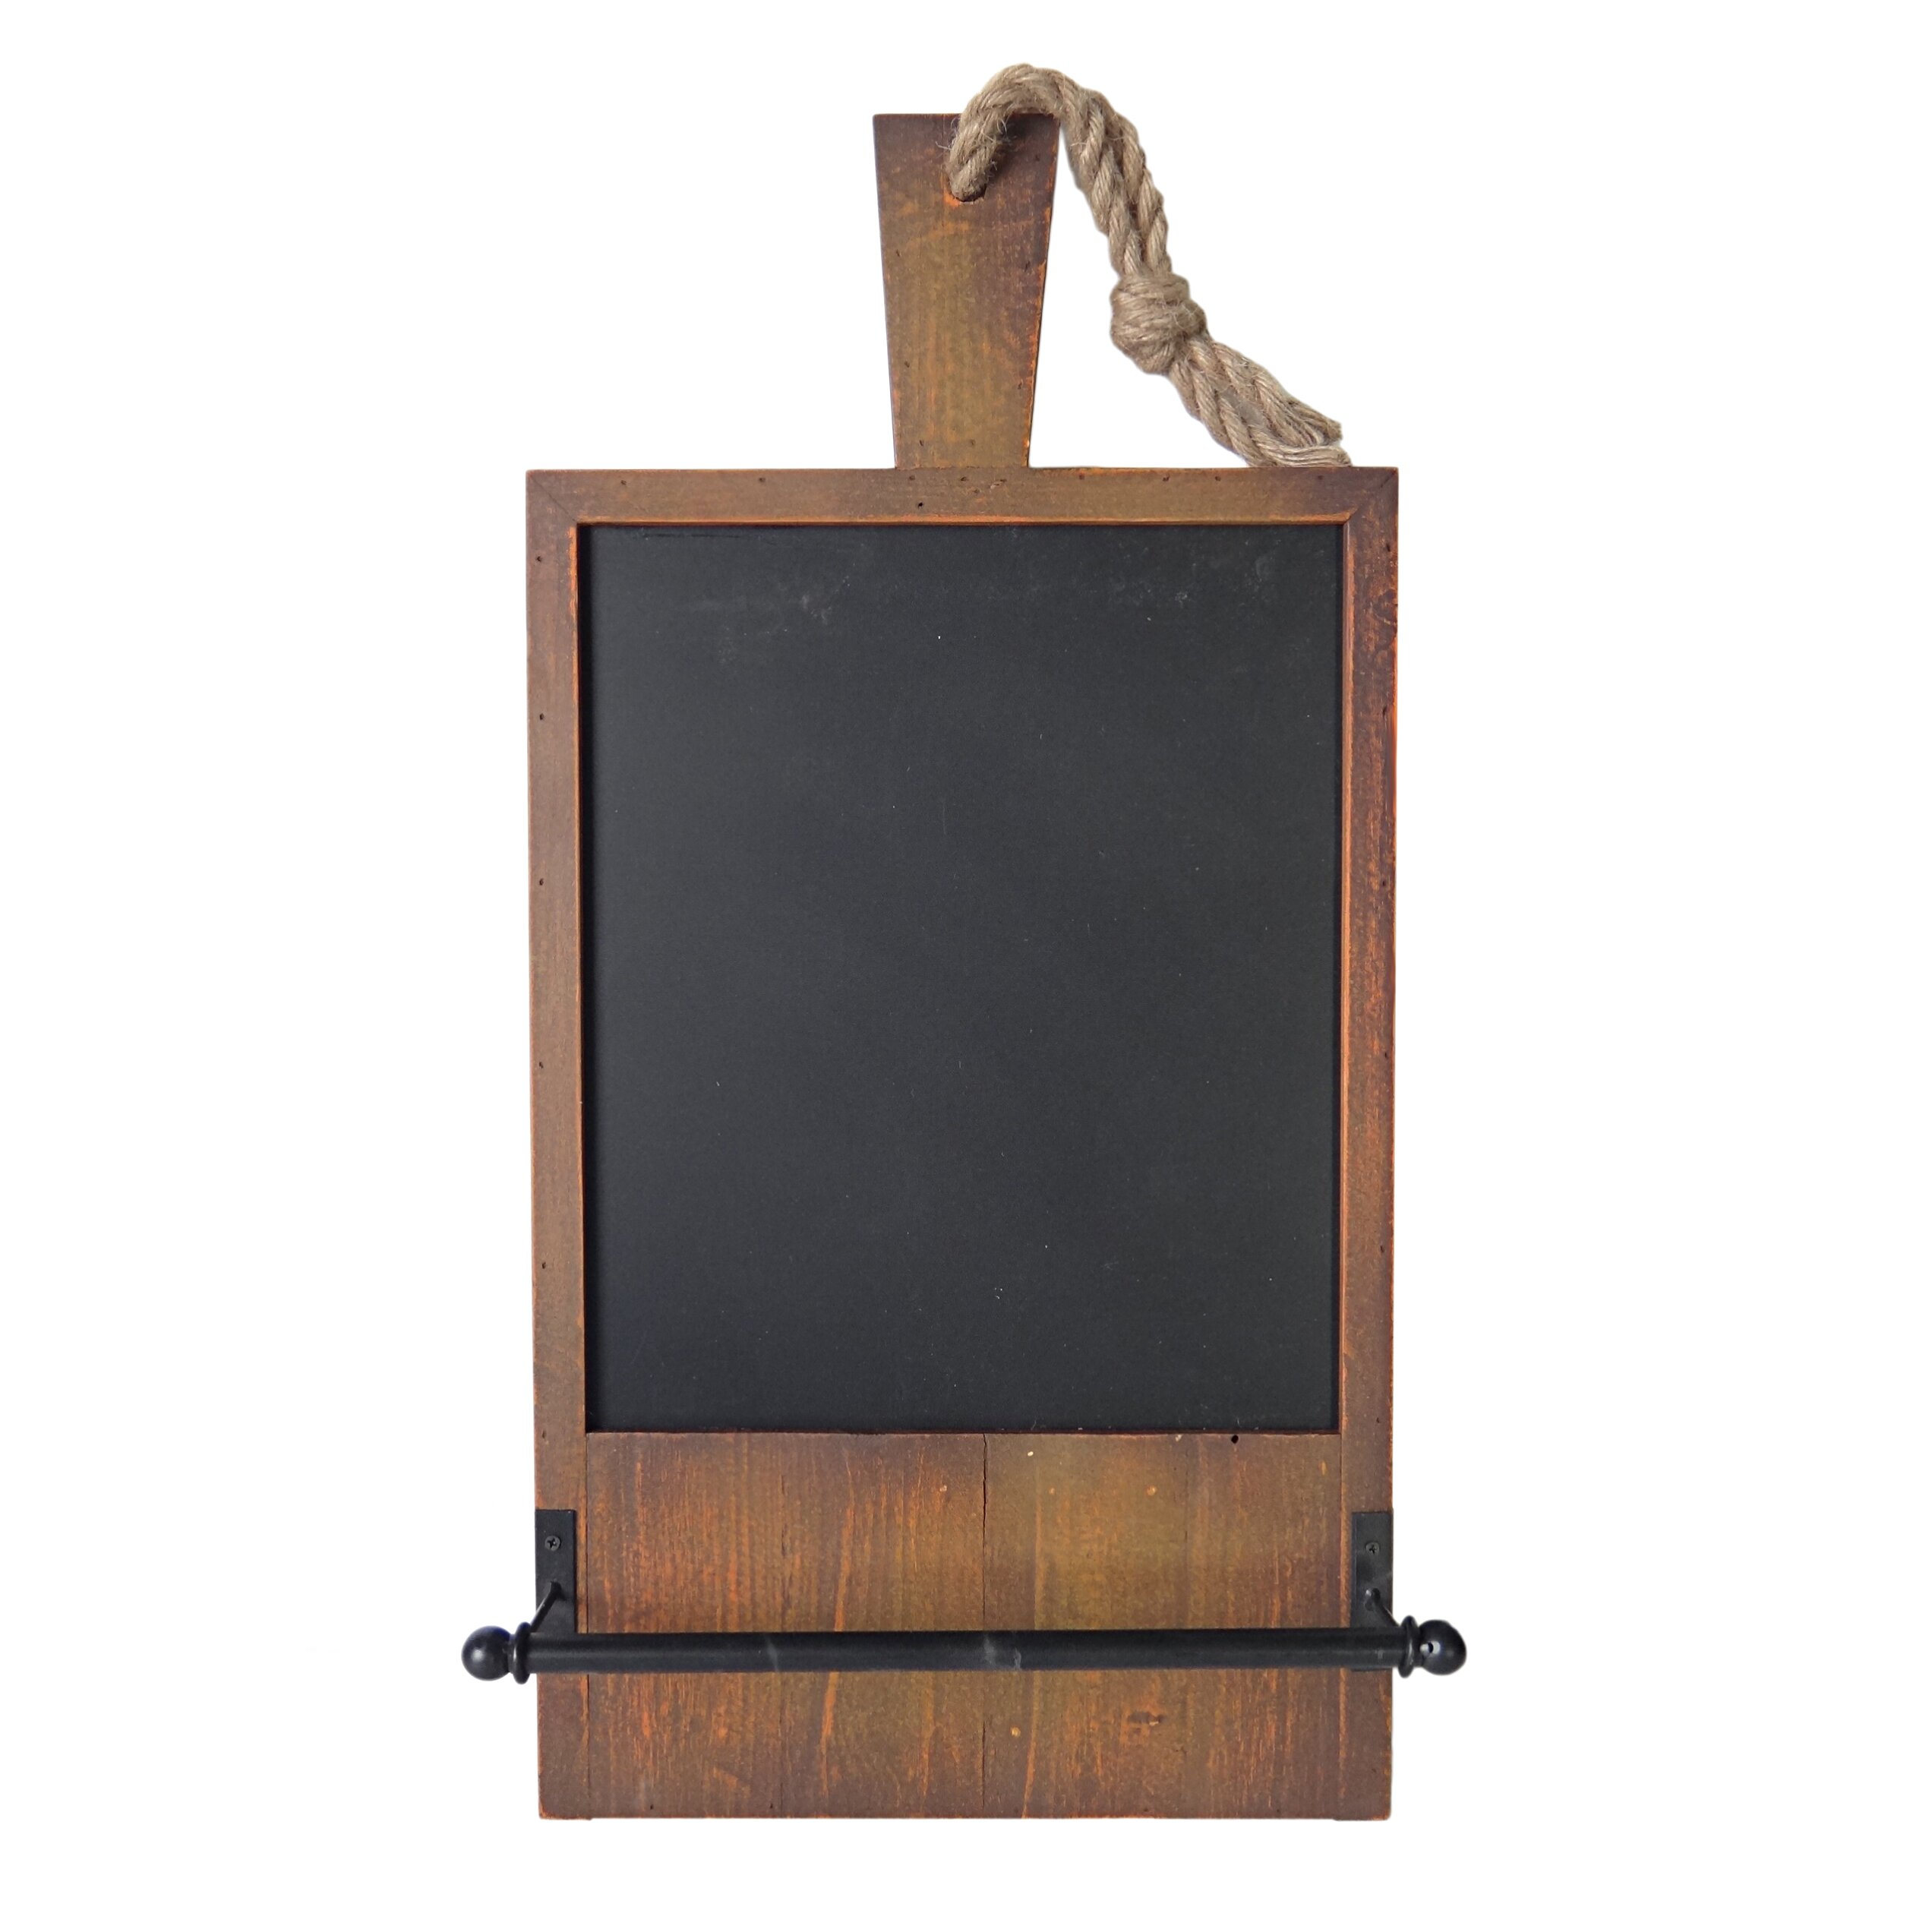 Kitchen Pictures To Hang: Cheungs Kitchen Wall Hanging Chalkboard & Reviews